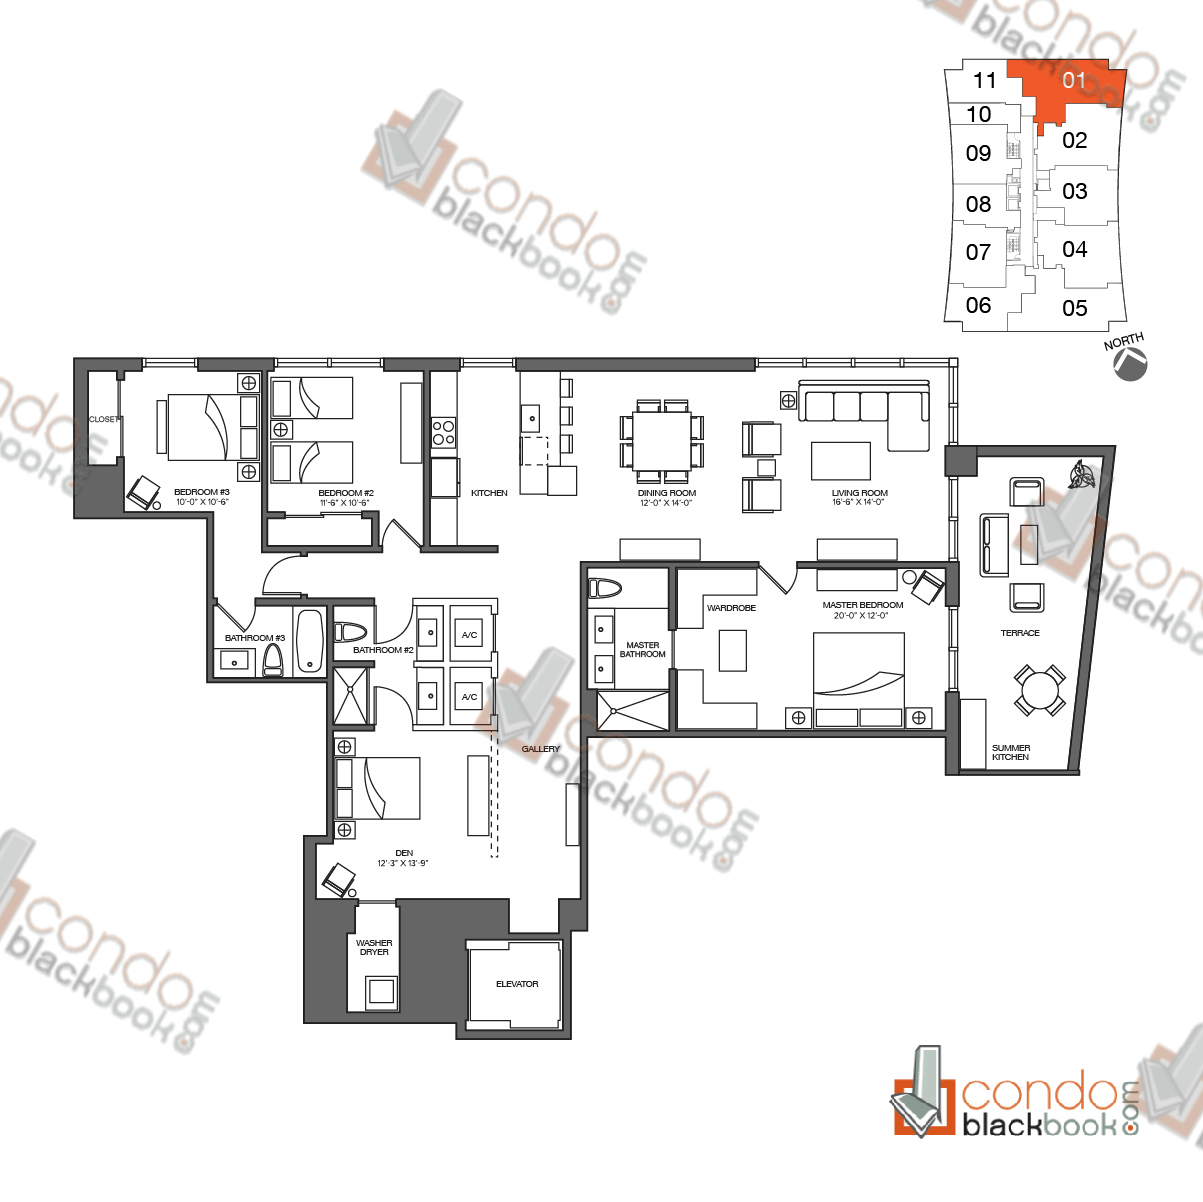 Floor plan for 1010 Brickell Brickell Miami, model A, line 01, 3/3 + Den bedrooms, 2,148 sq ft